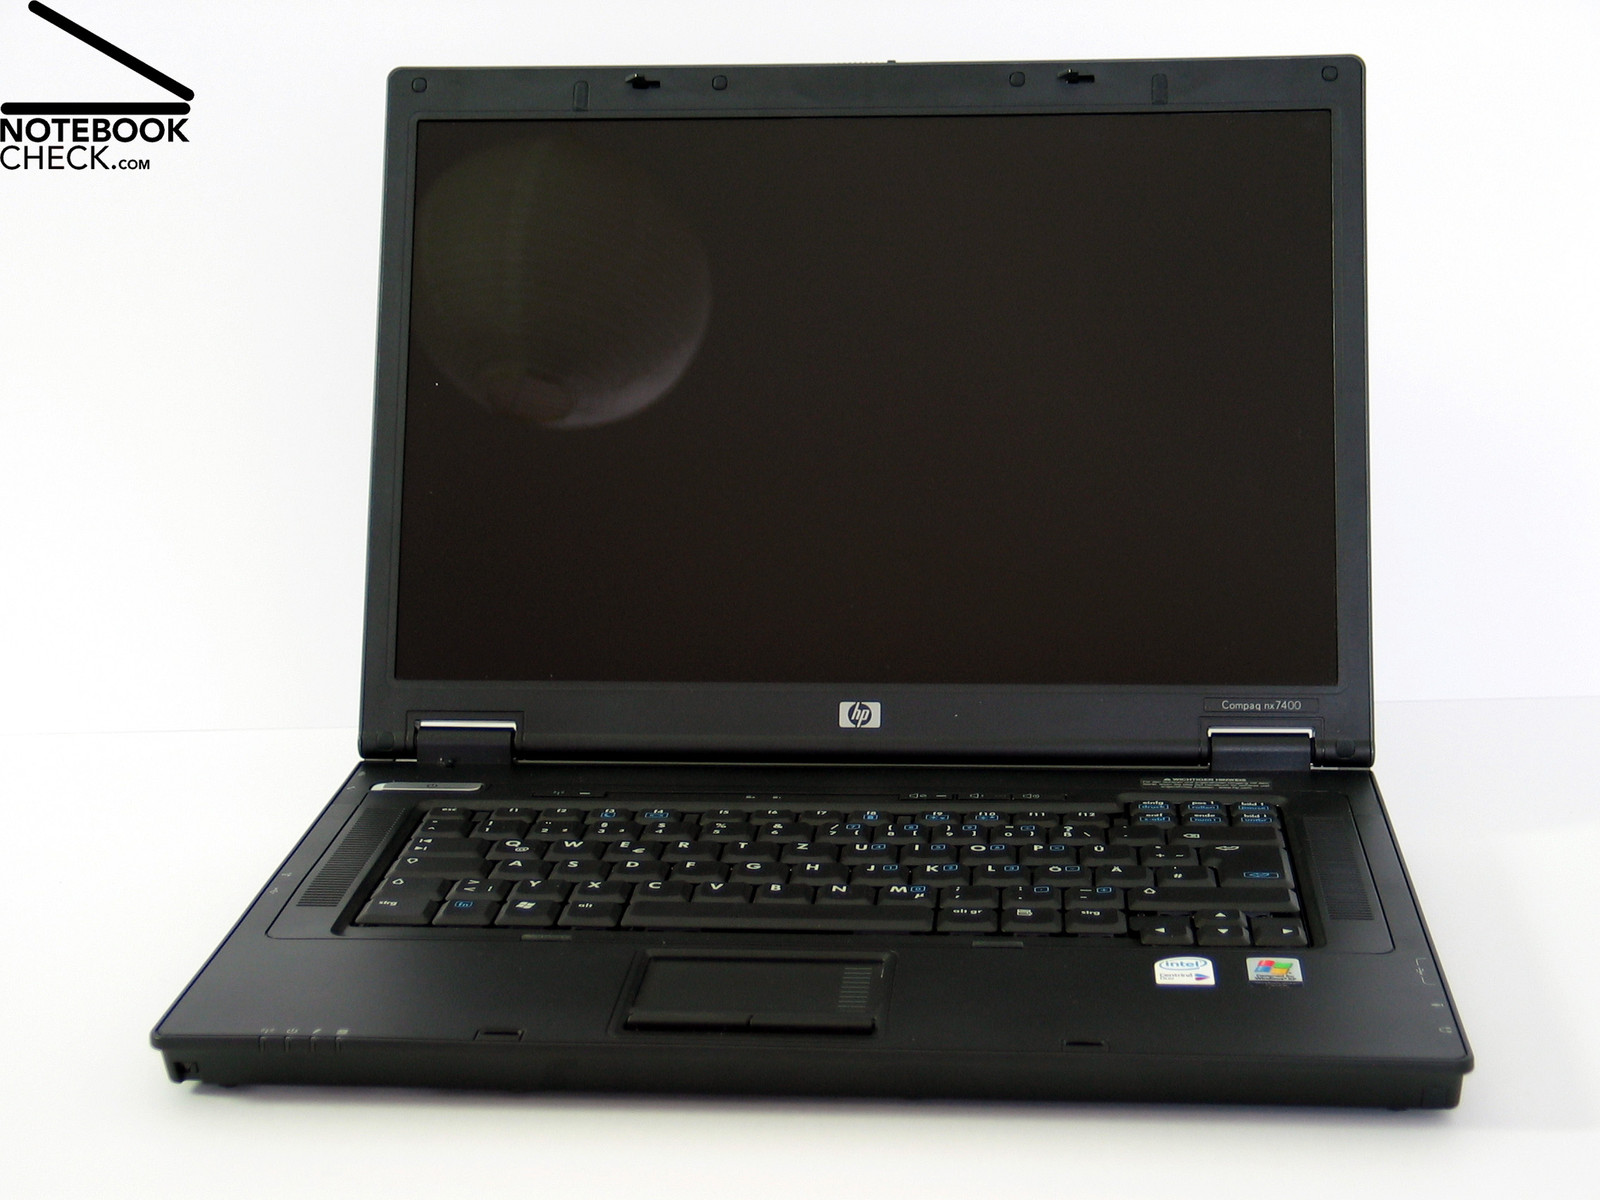 HP COMPAQ NX7400 VIDEO WINDOWS 7 64BIT DRIVER